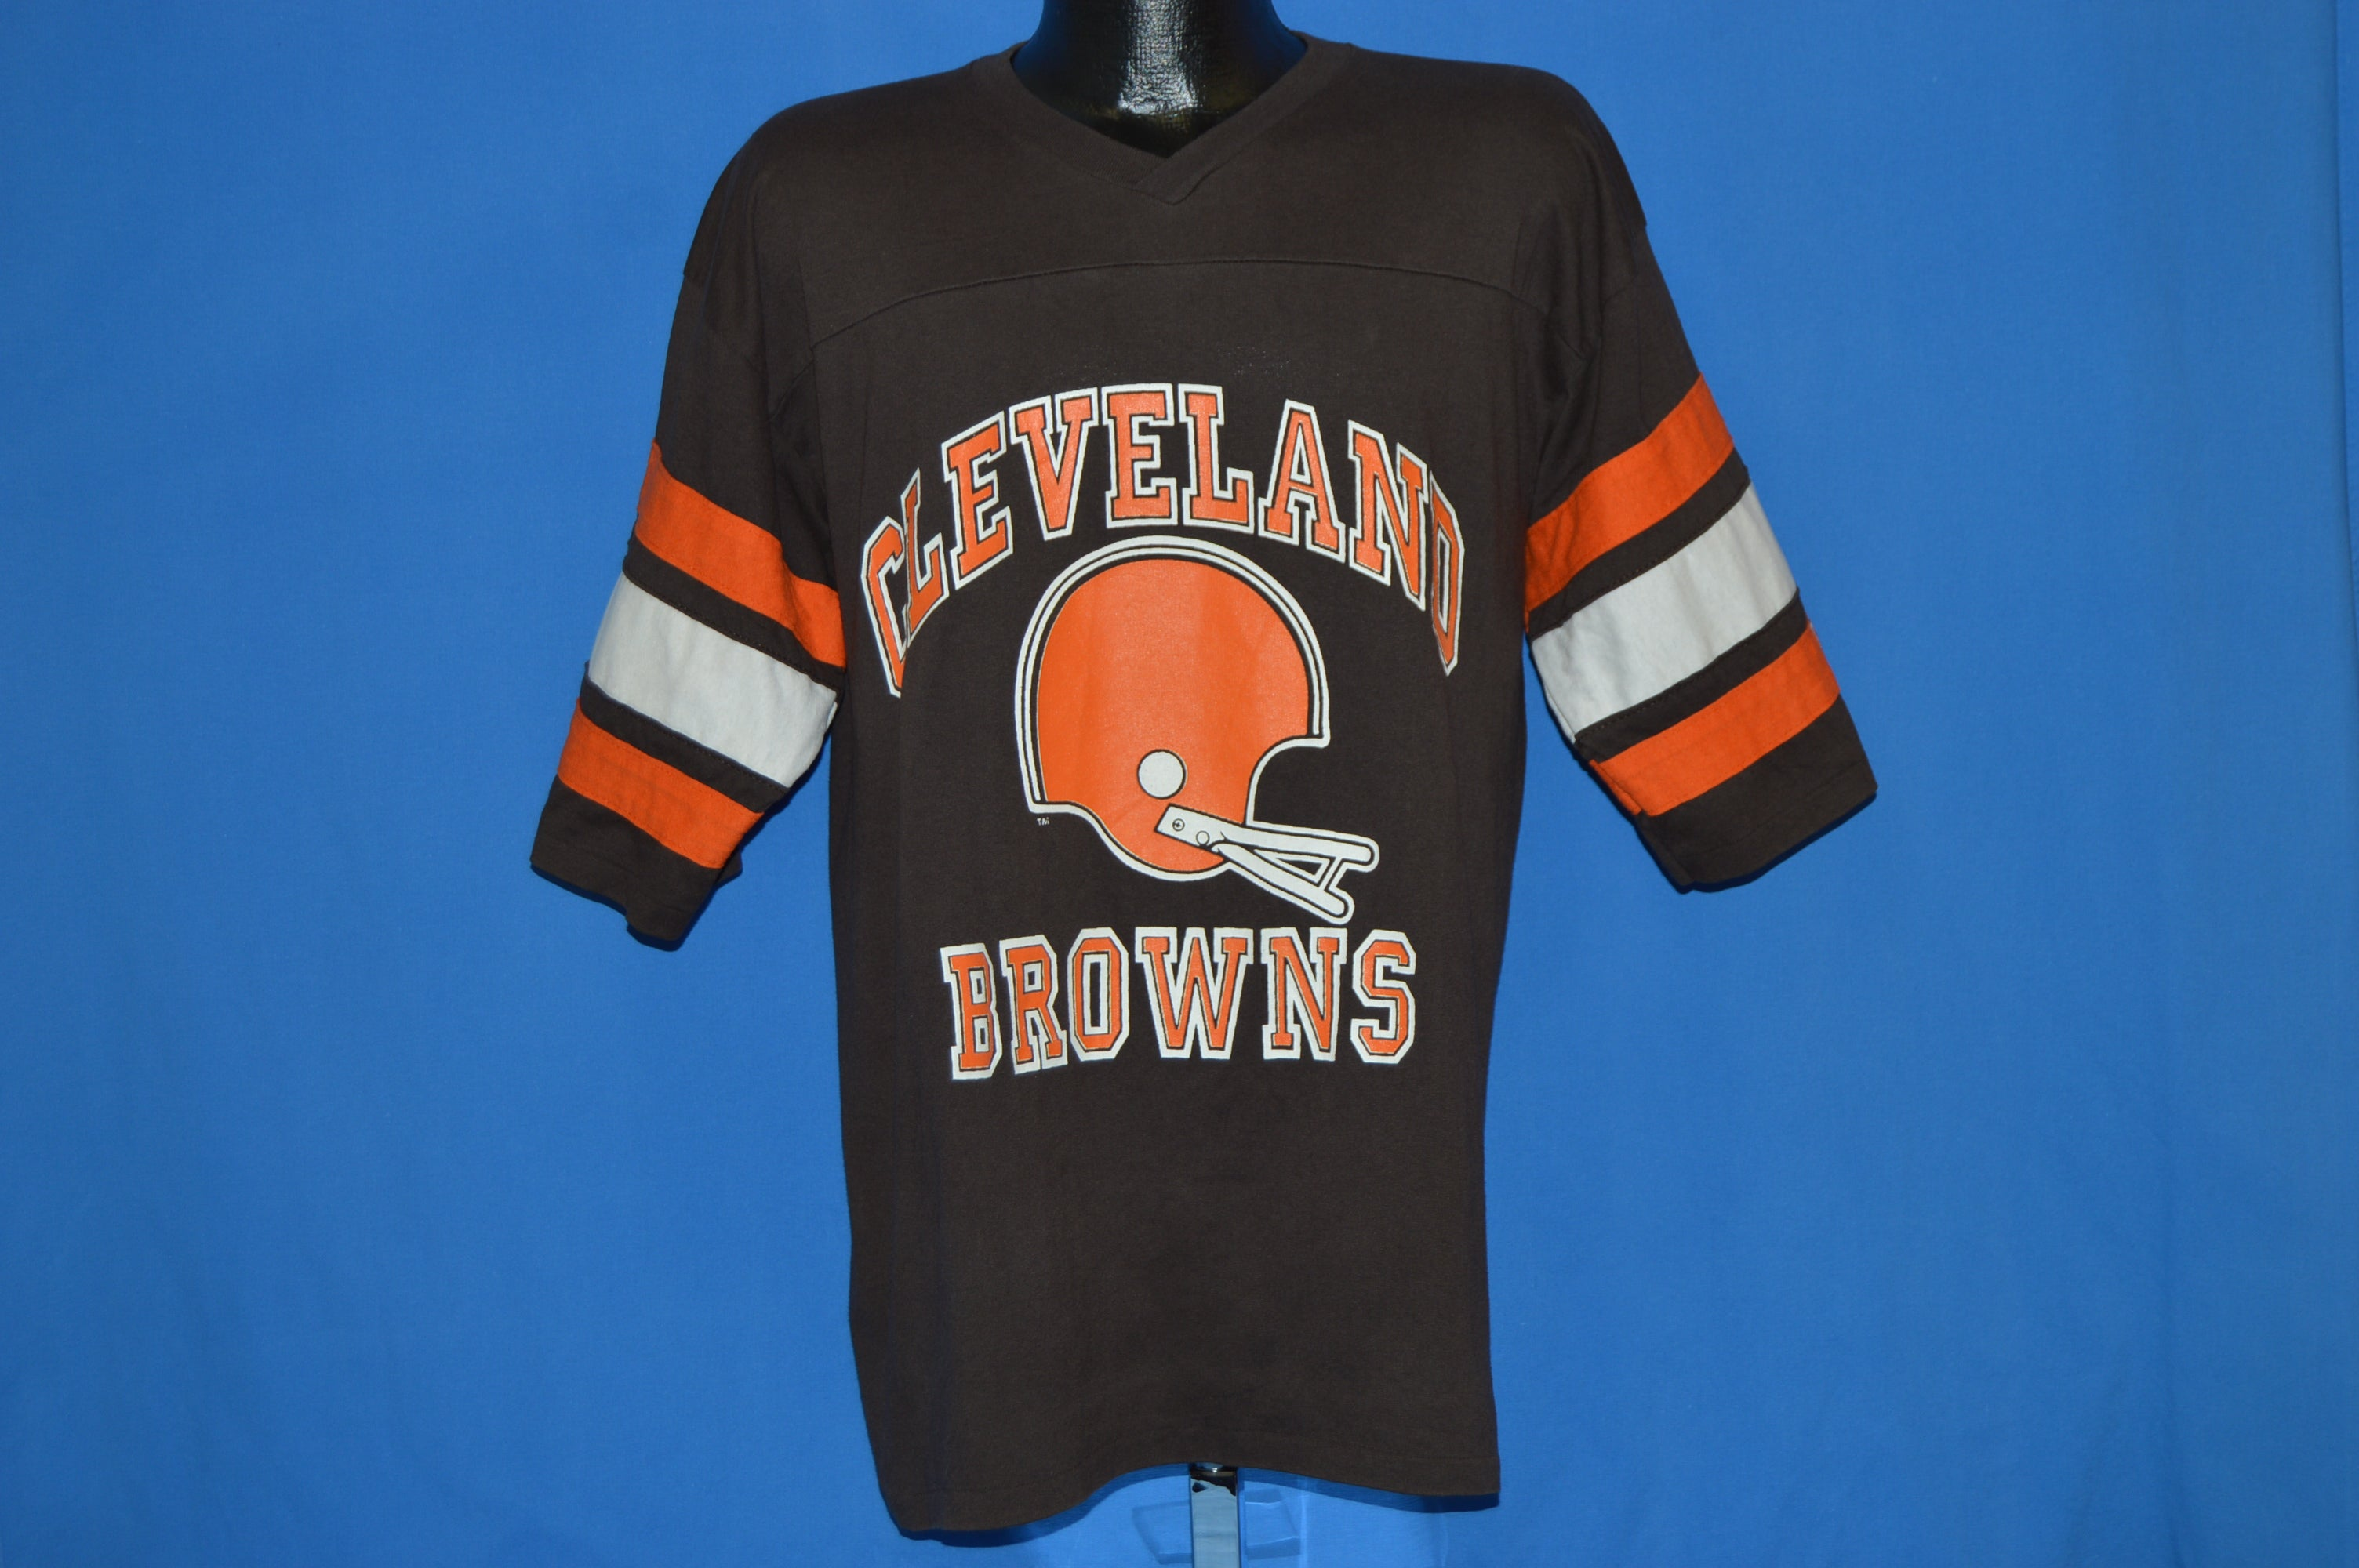 87e10e33 80s Cleveland Browns Jersey-style t-shirt Extra Large - The Captains ...